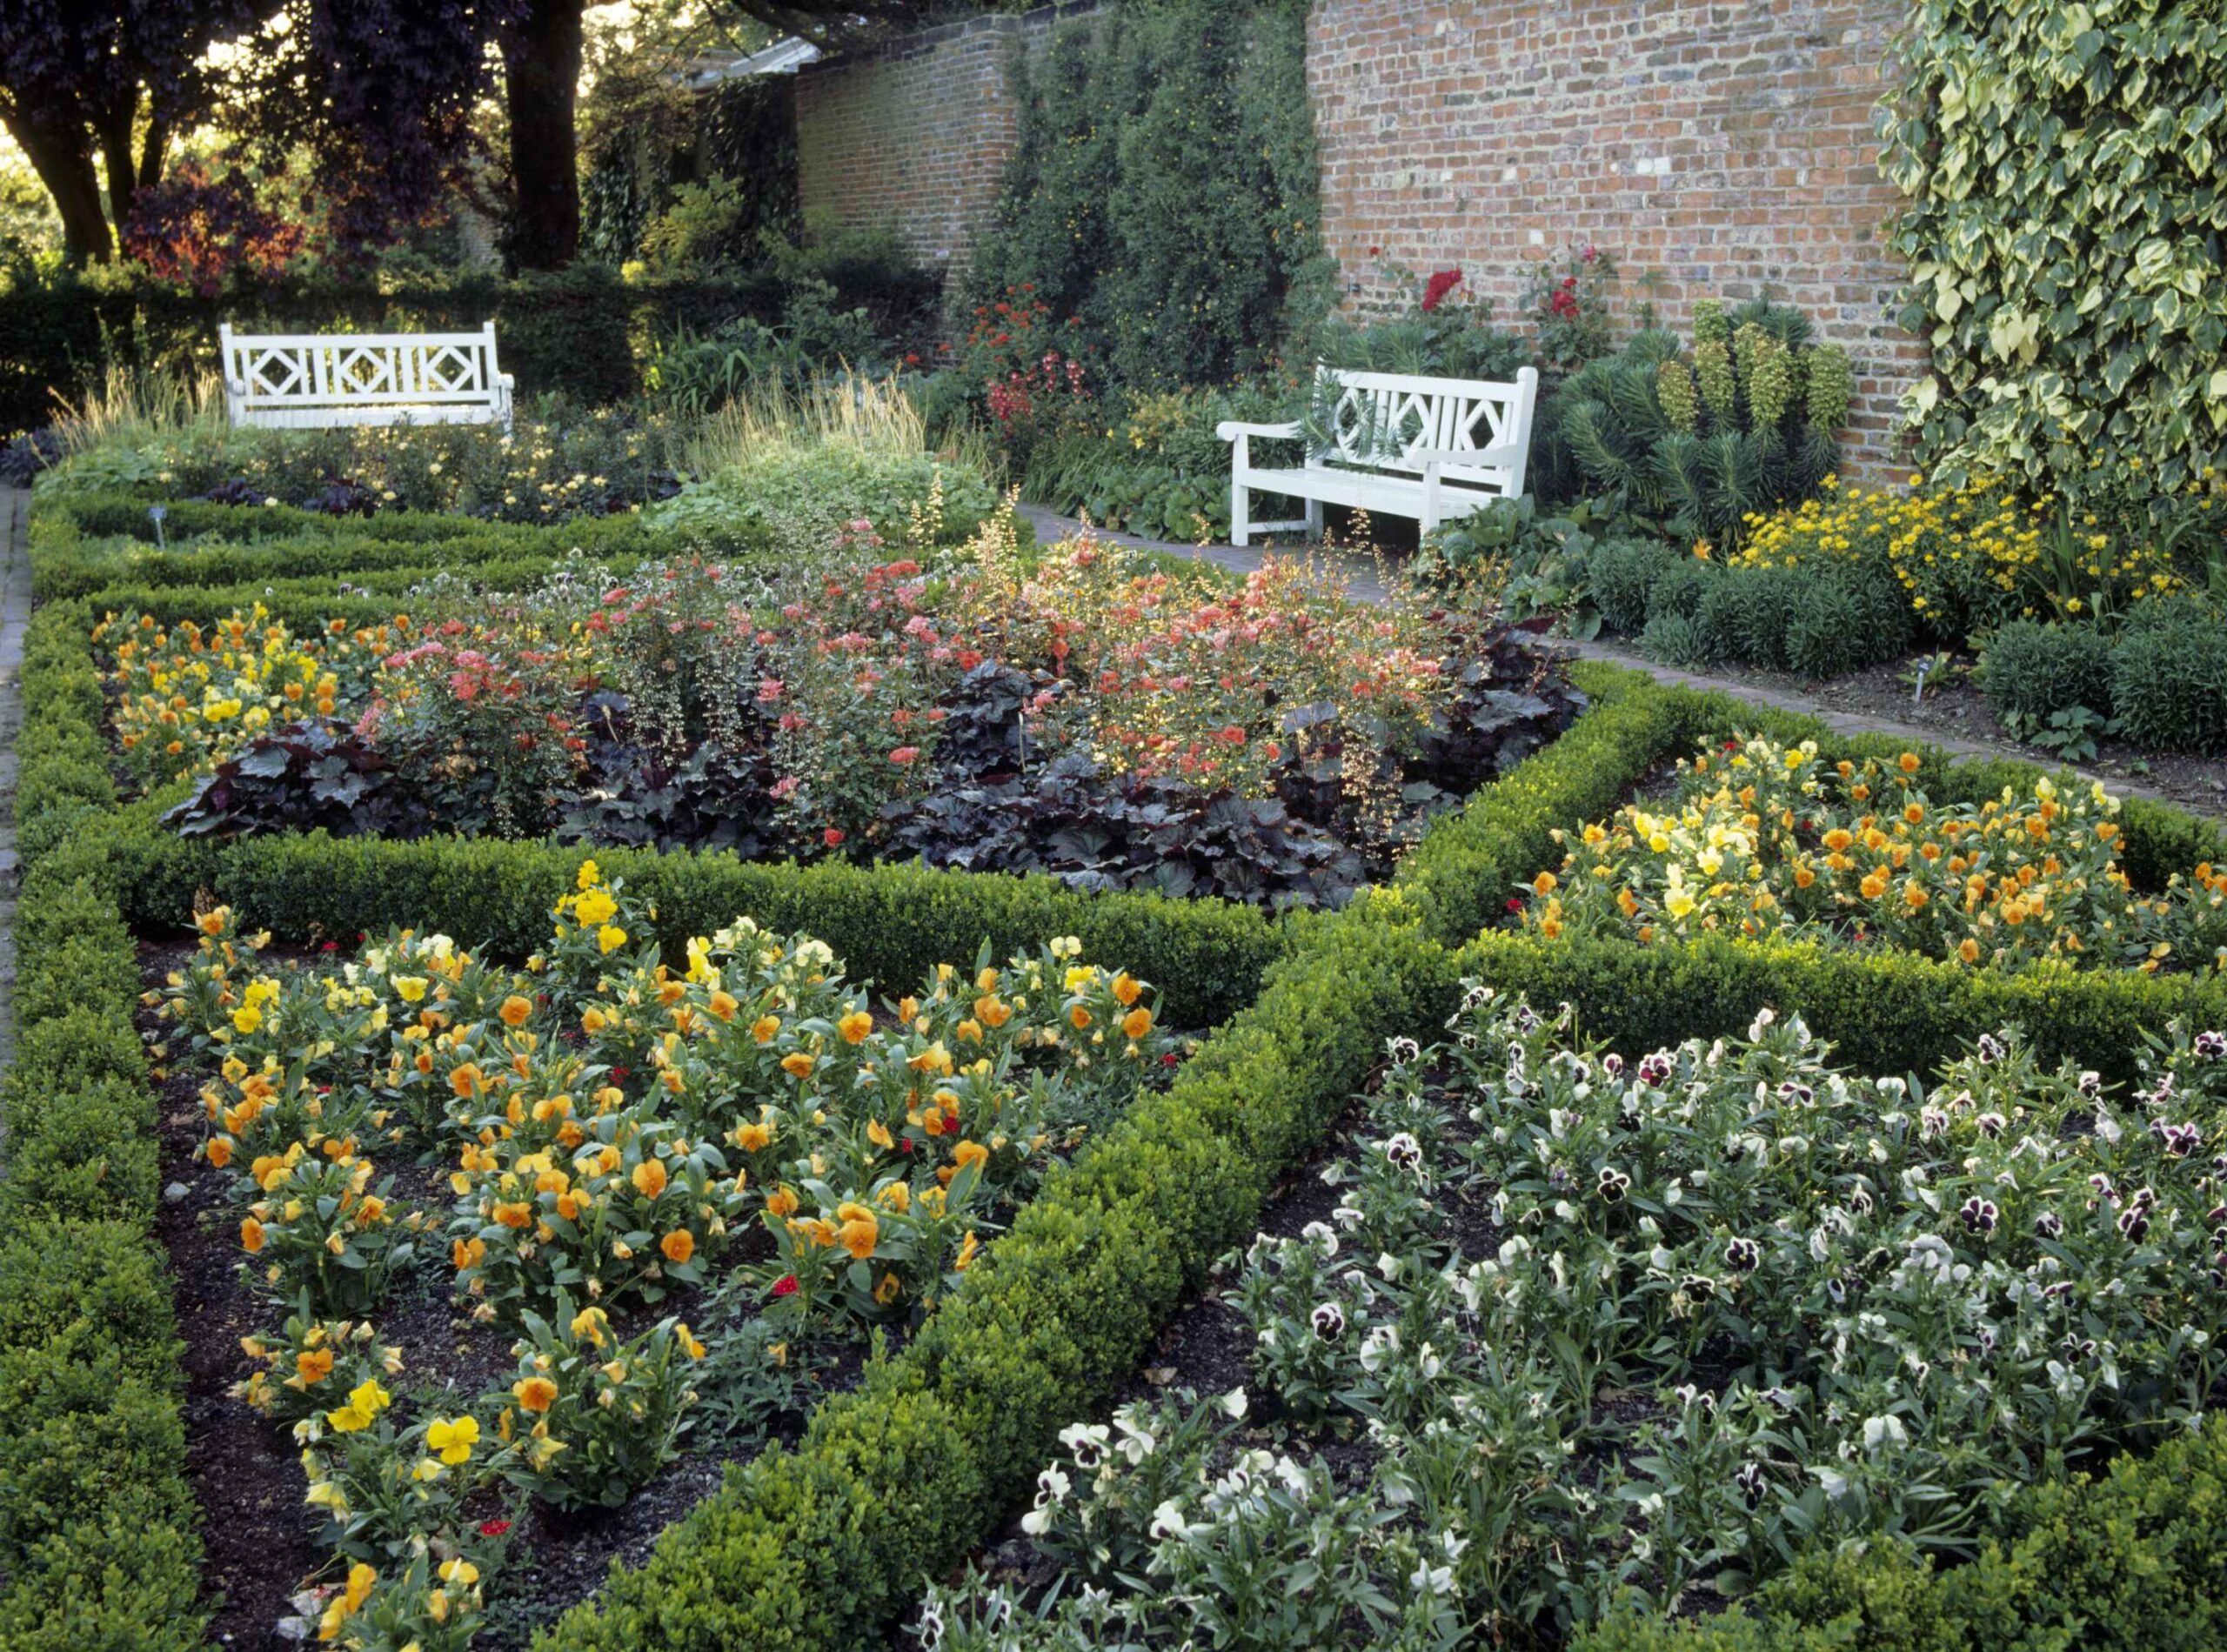 View of the Parterre in the west Formal Garden at Beningbrough Hall.